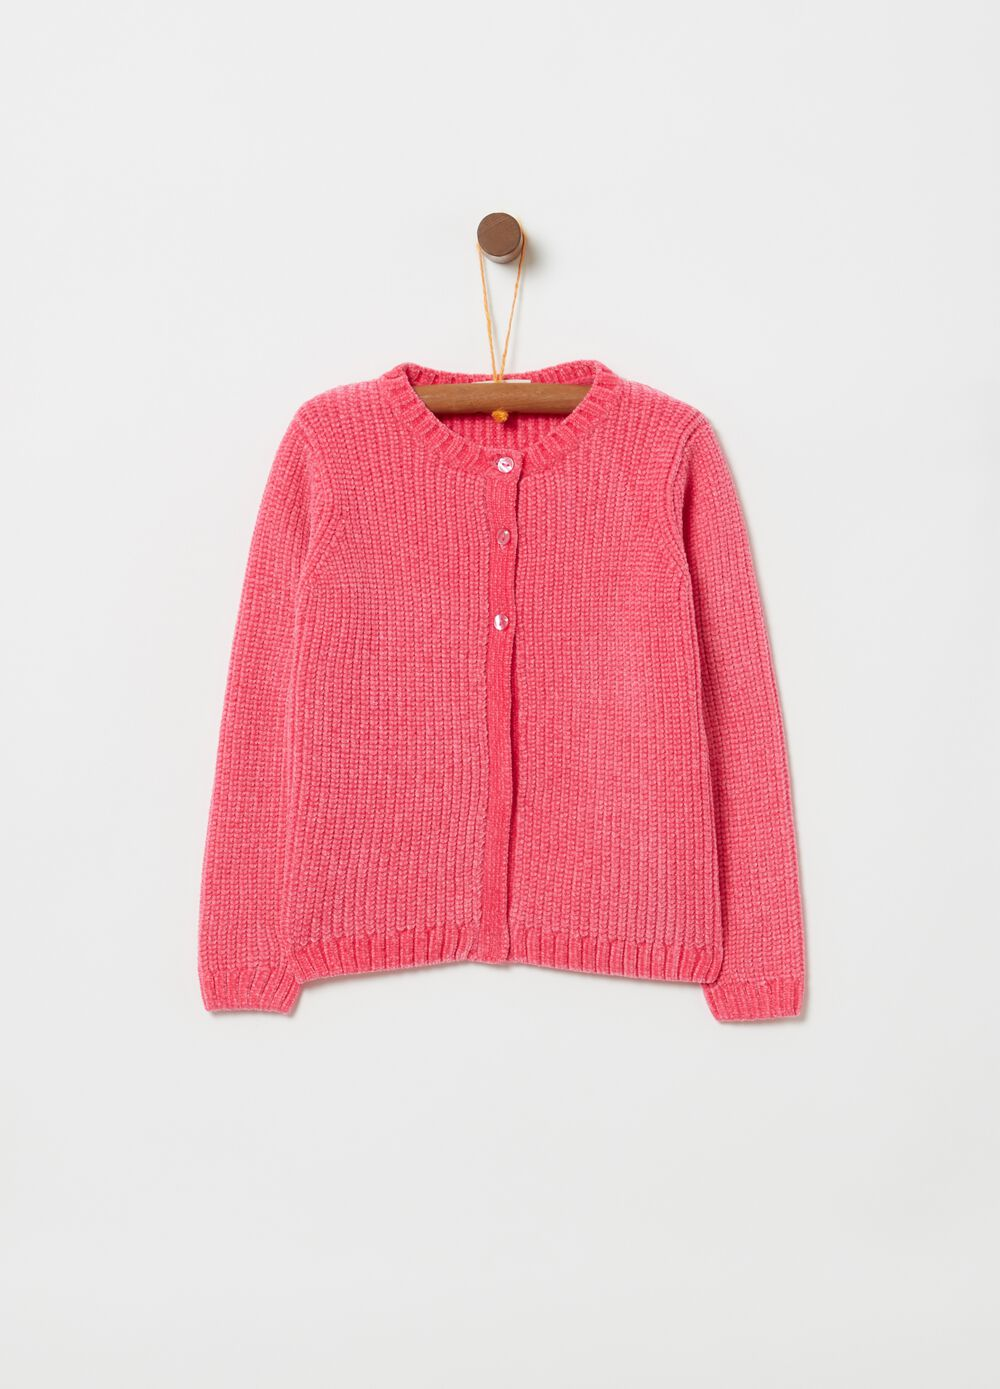 Knitted chenille cardigan with buttons